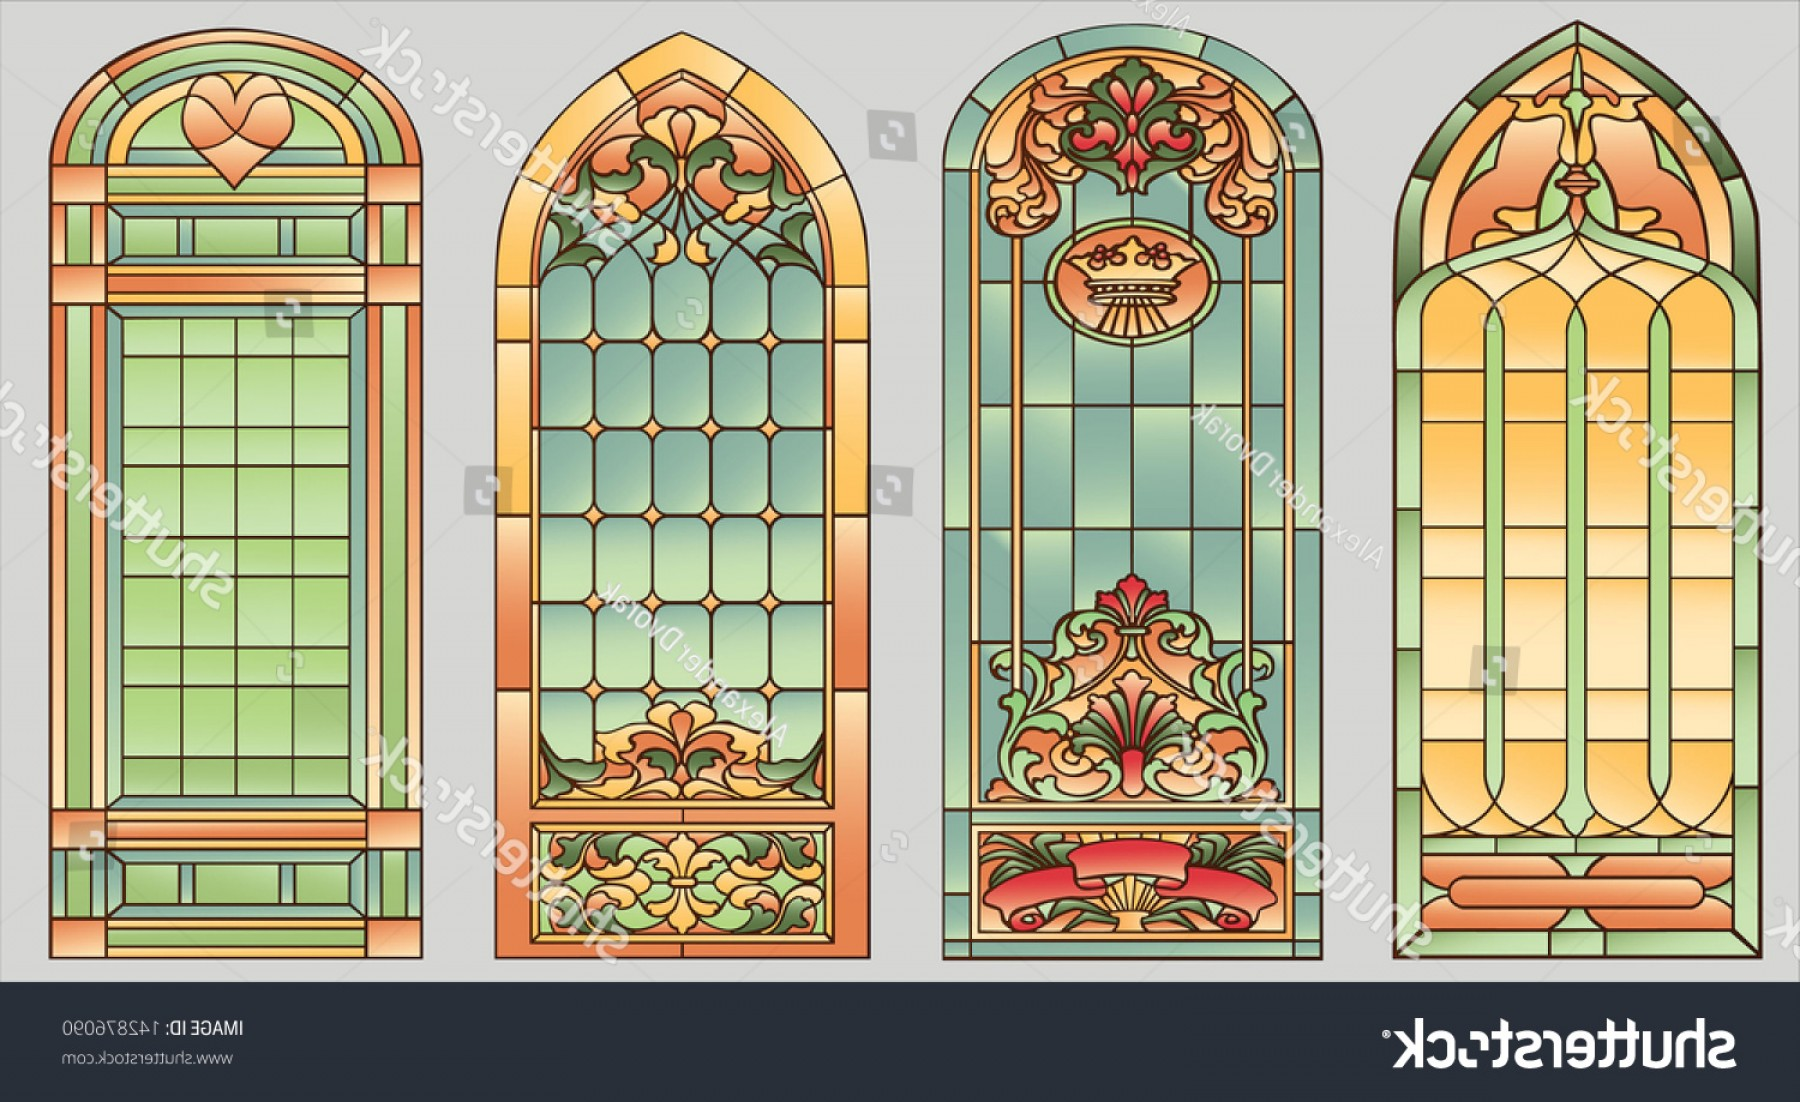 Arch Vector Illinios: Stainedglass Windows Flowers Hearts Crown